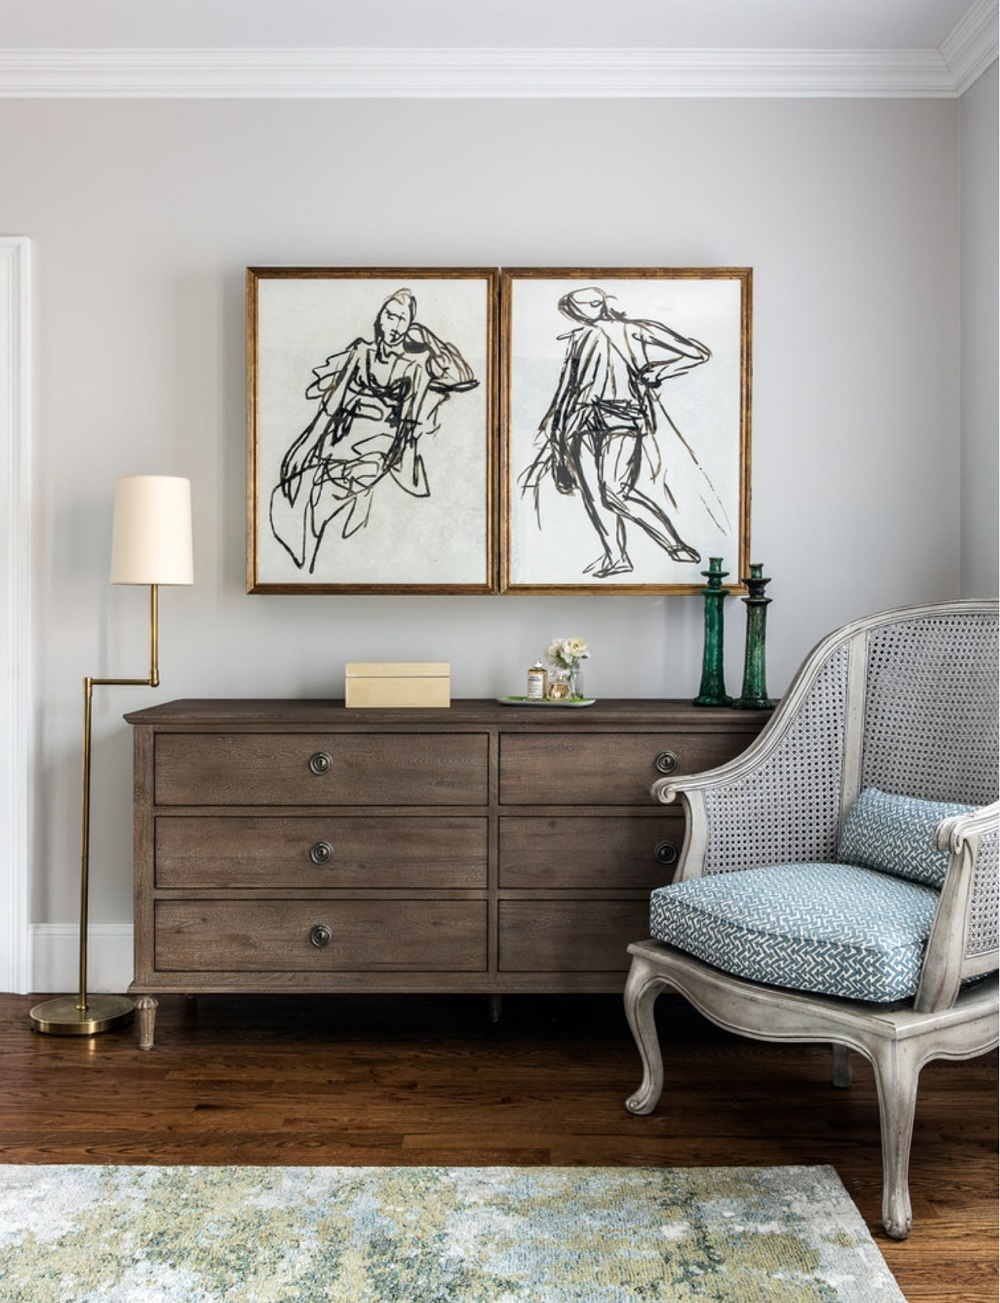 f12-1 How to create a Feng Shui bedroom layout with little effort